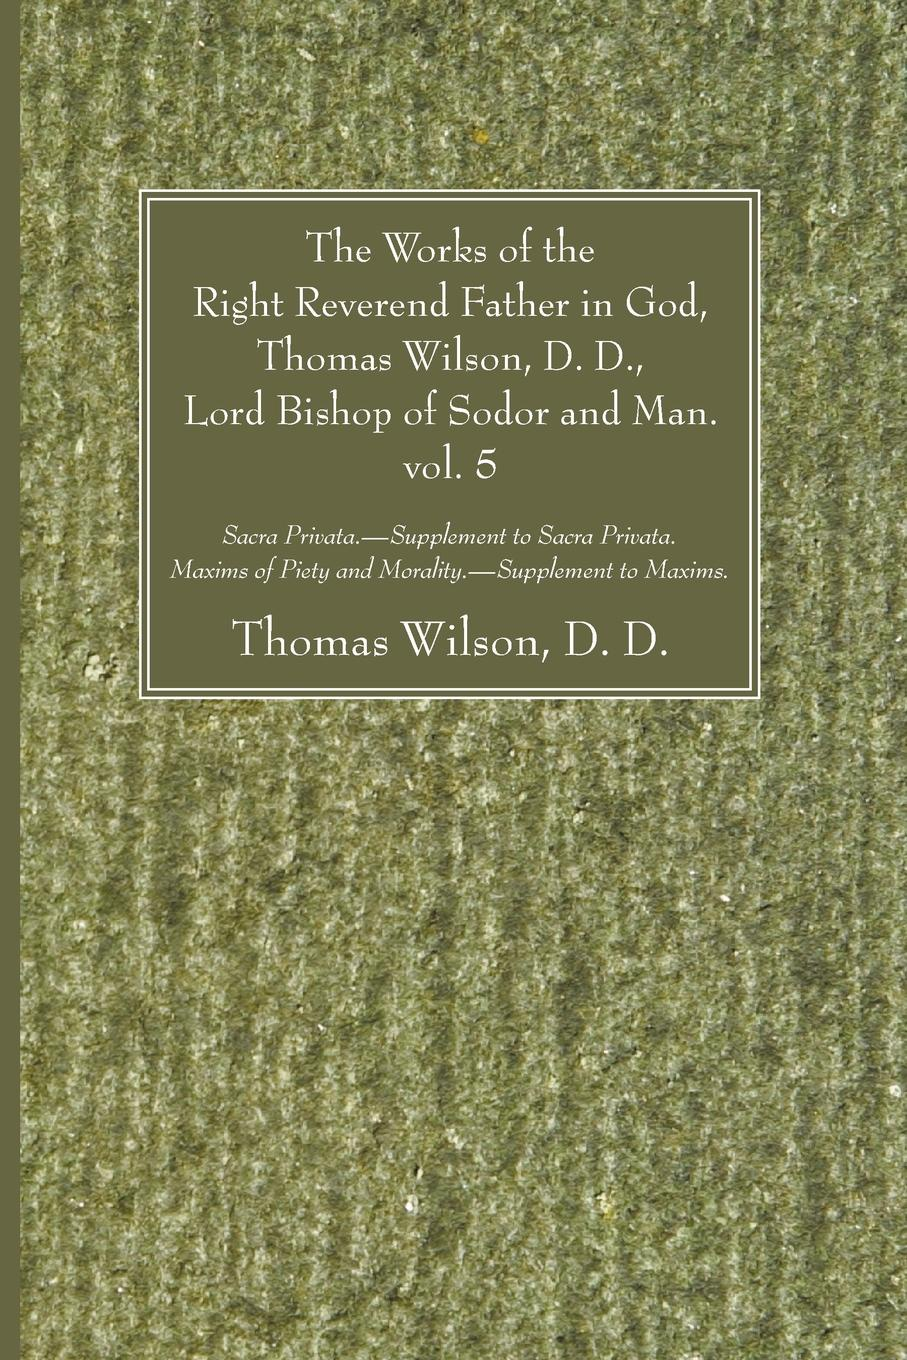 Thomas D. D. Wilson The Works of the Right Reverend Father in God, Thomas Wilson, D. D., Lord Bishop of Sodor and Man. vol. 5 levi bishop the poetical works of levi bishop